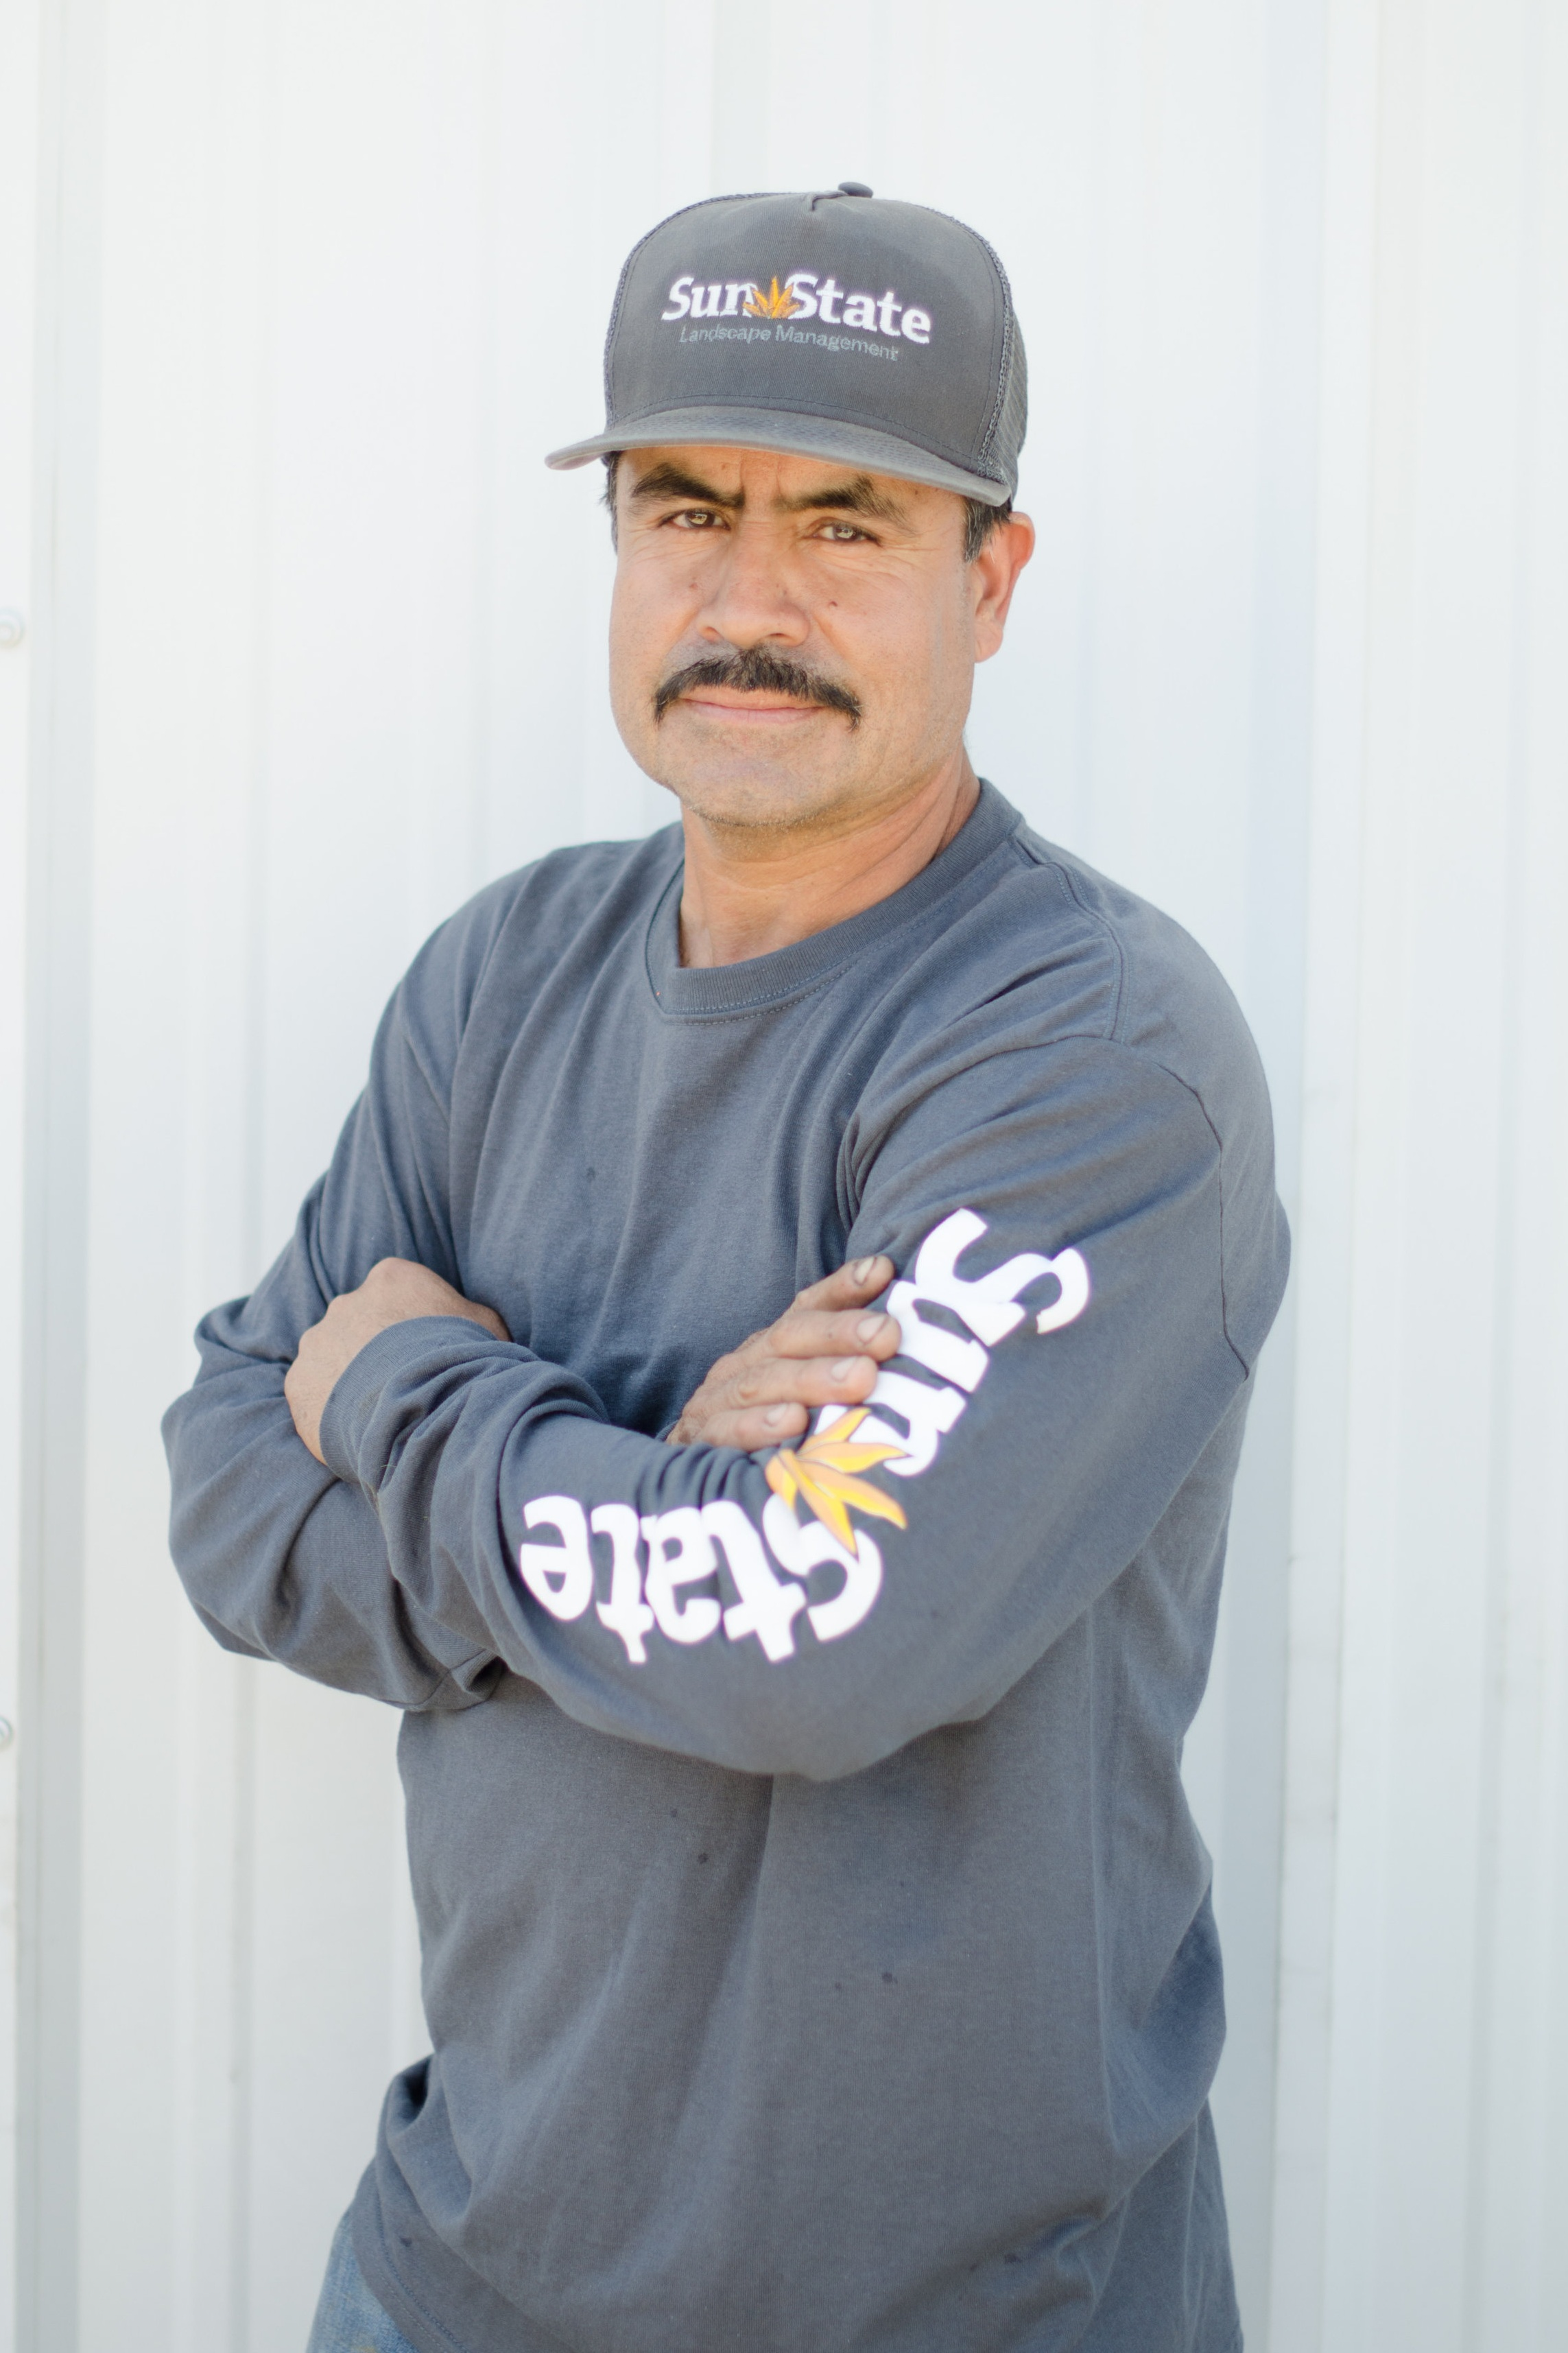 Tomas Martinez  |  Equipment Mechanic